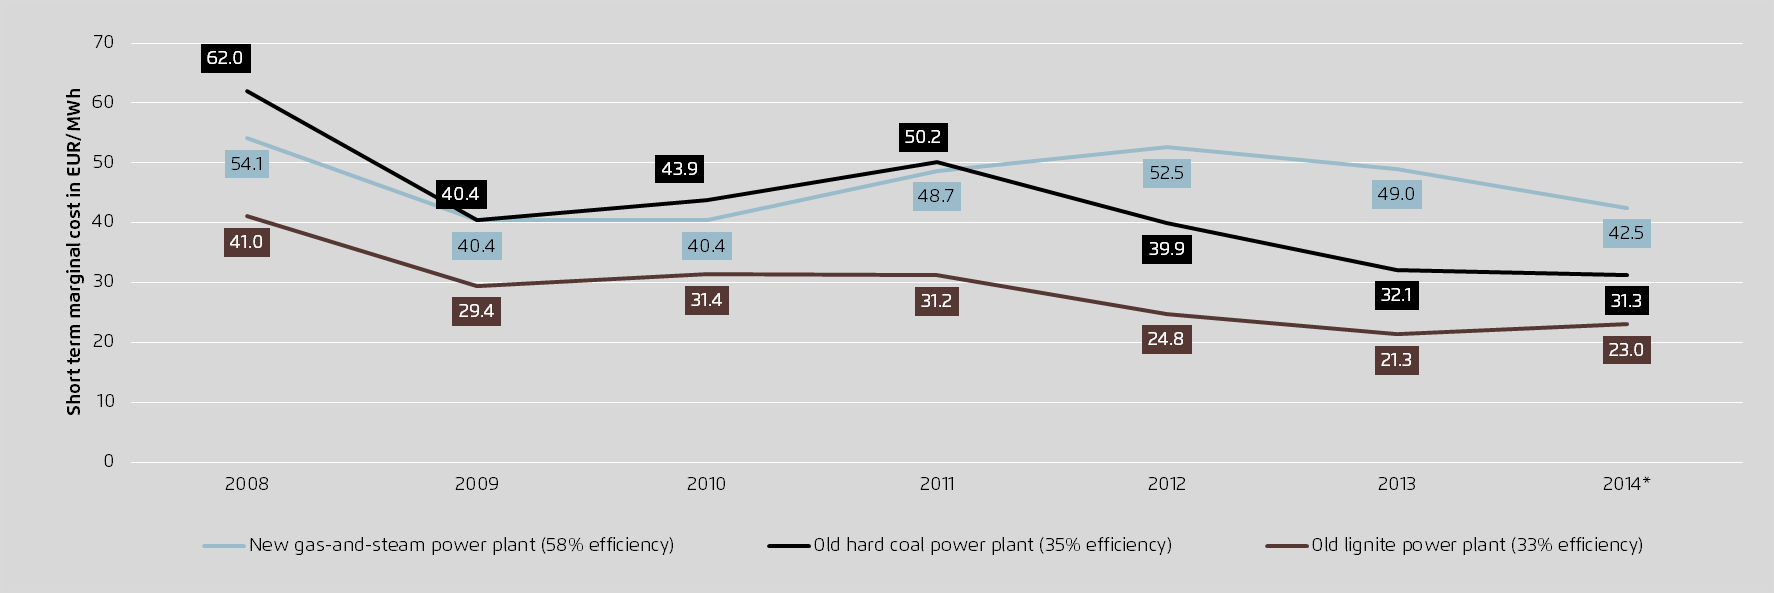 Because of the price relations between coal, gas and CO2, since 2011 electricity from old hard-coal plants has been cheaper than power from new gas-fired plants.